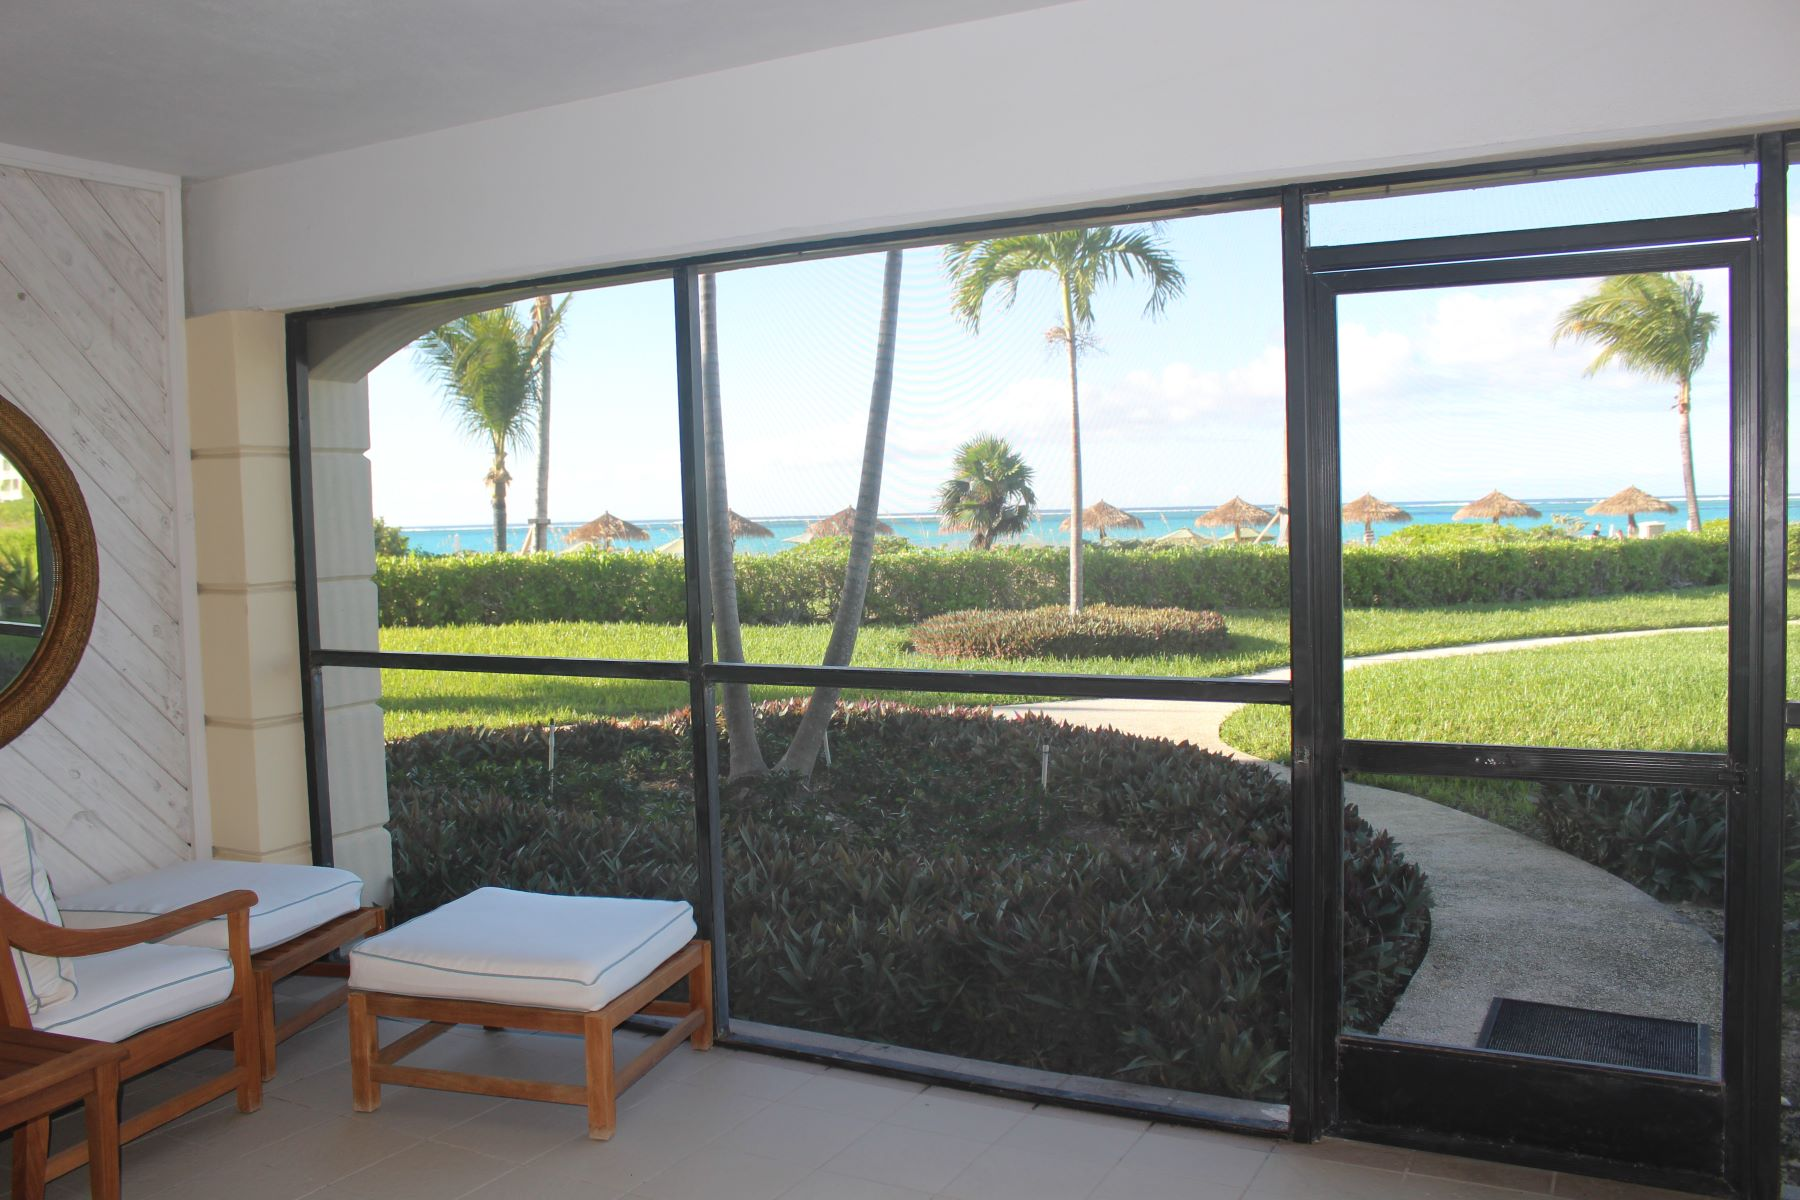 Additional photo for property listing at The Sands at Grace Bay - Suite 3107.08 The Sands On Grace Bay, Grace Bay, Providenciales Turks And Caicos Islands